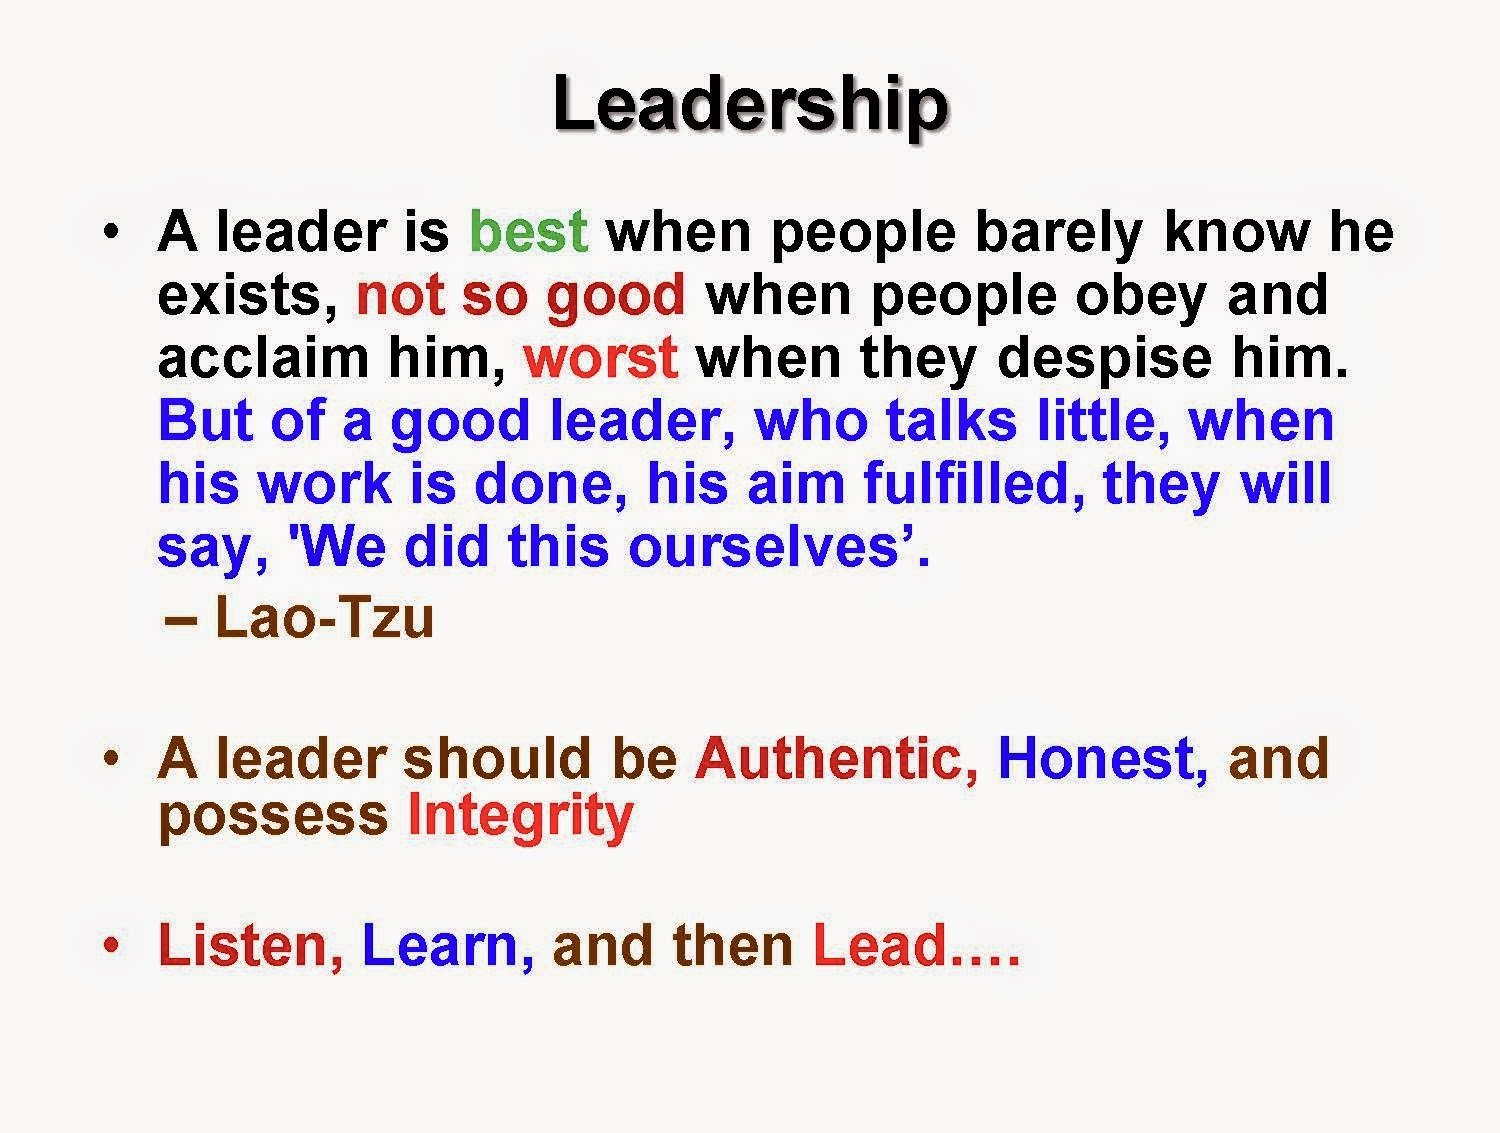 management verses leadership edited The manager's job is to plan, organize and coordinate the leader's job is to  inspire and motivate learn the differences between management and  leadership.